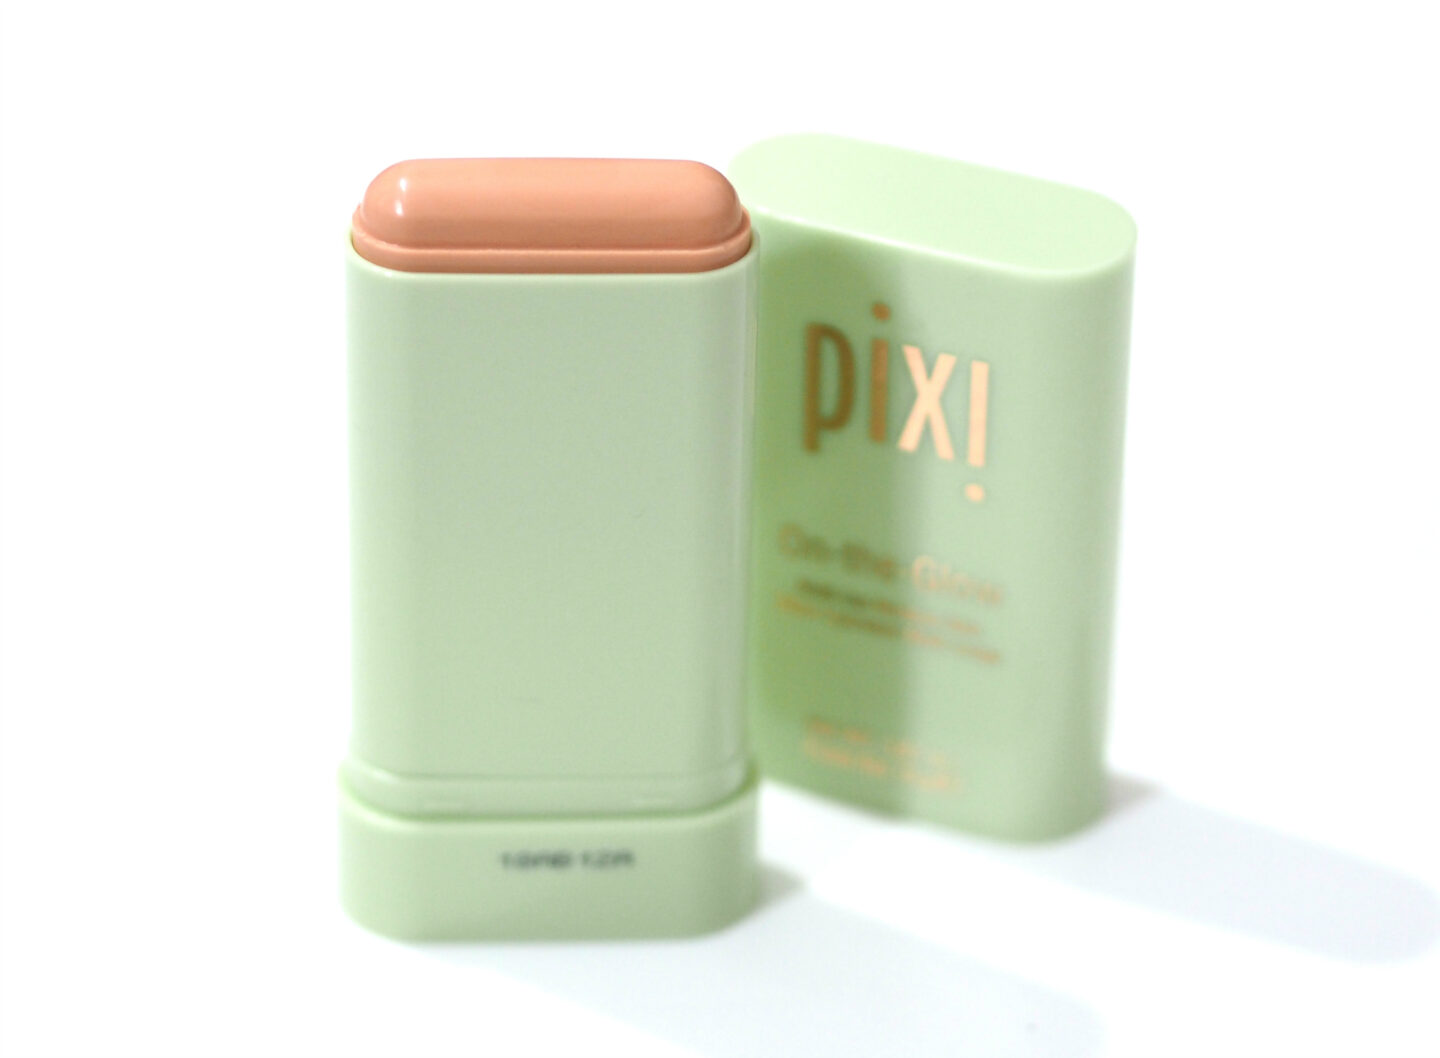 Pixi On The Glow Multi Use Moisture Stick Review